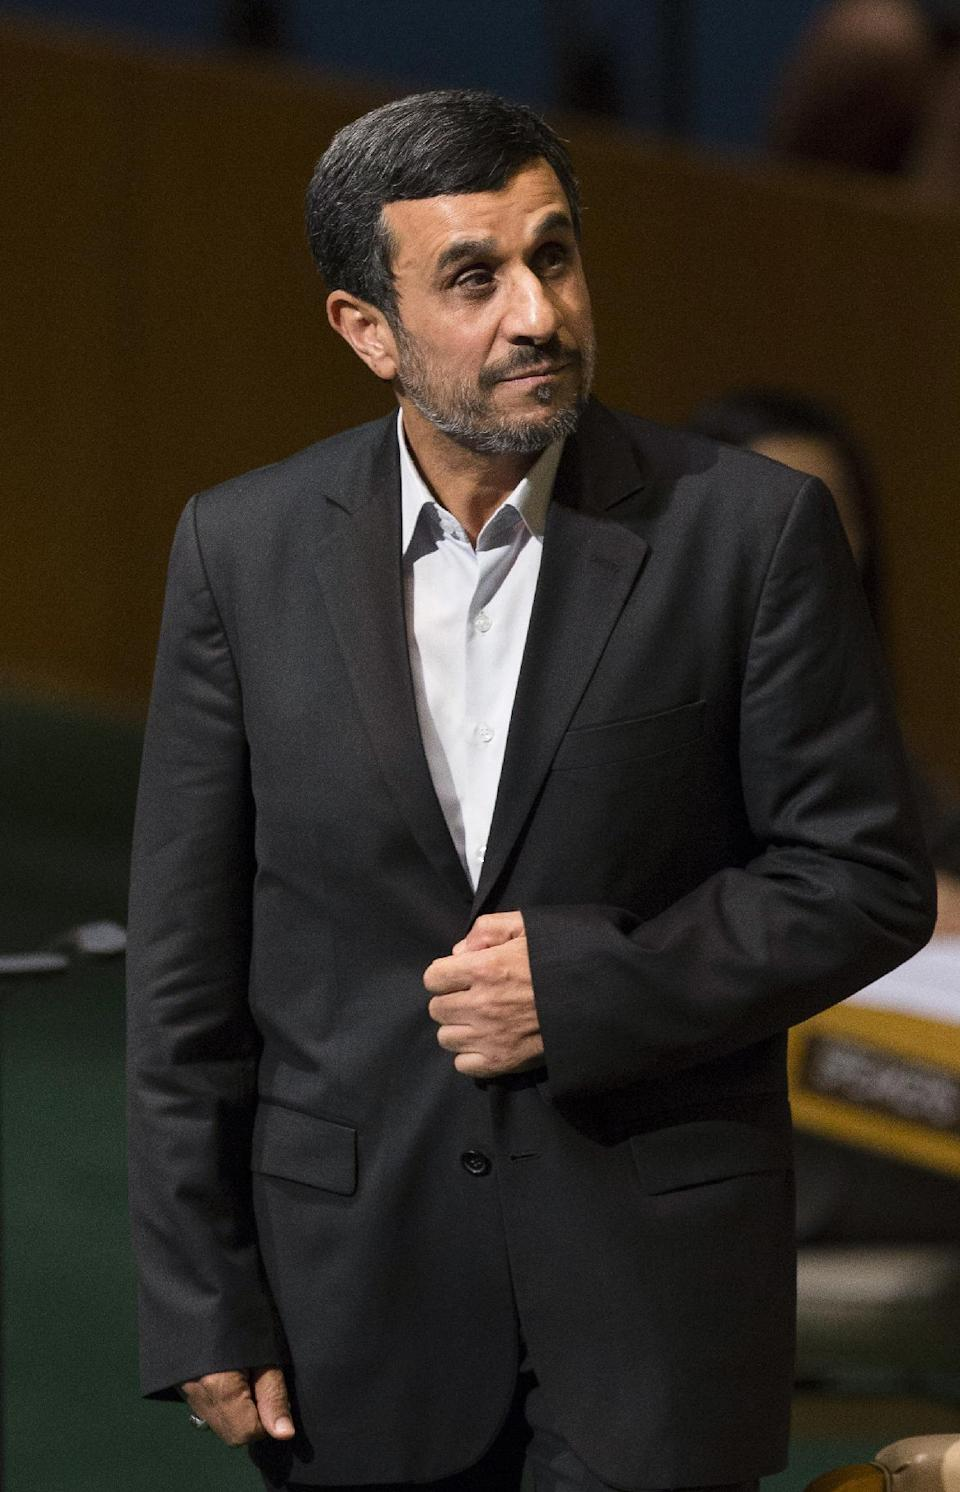 Iranian President Mahmoud Ahmadinejad approaches the podium before addressing the 67th United Nations General Assembly, at U.N. headquarters, Wednesday, Sept. 26, 2012. (AP Photo/John Minchillo)